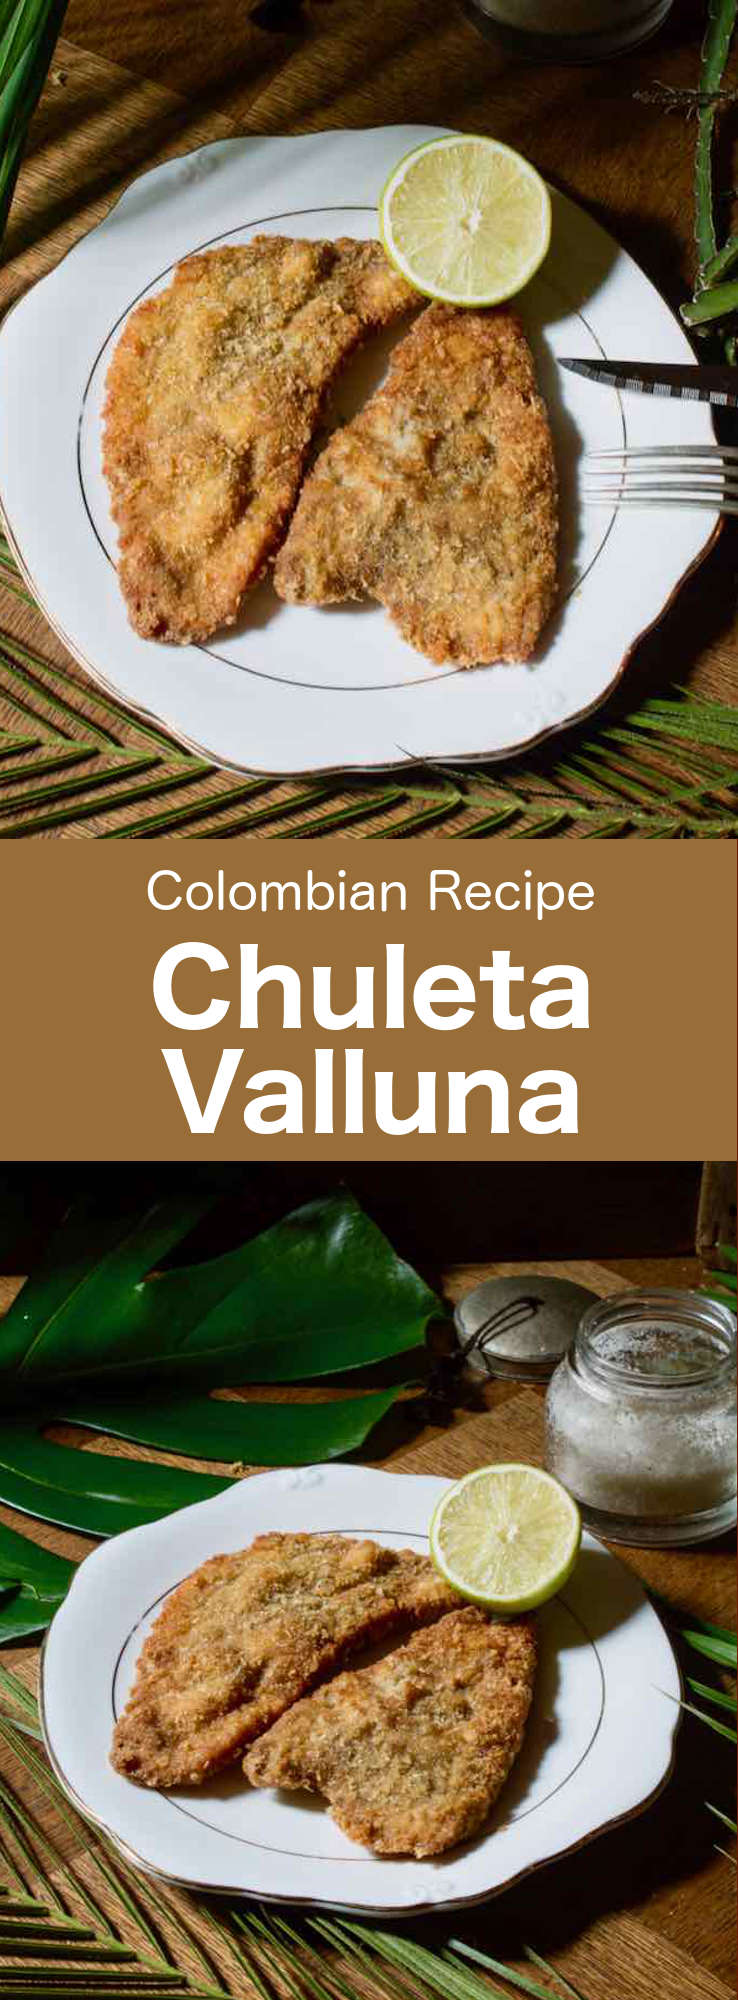 Chuleta valluna is a typical dish from the Valle del Cauca region of Colombia. It is prepared with breaded pork loin, and is similar to schnitzel. #Colombia #ColombianCuisine #LatinAmerica #LatinAmericanCuisine #WorldCuisine #196flavors